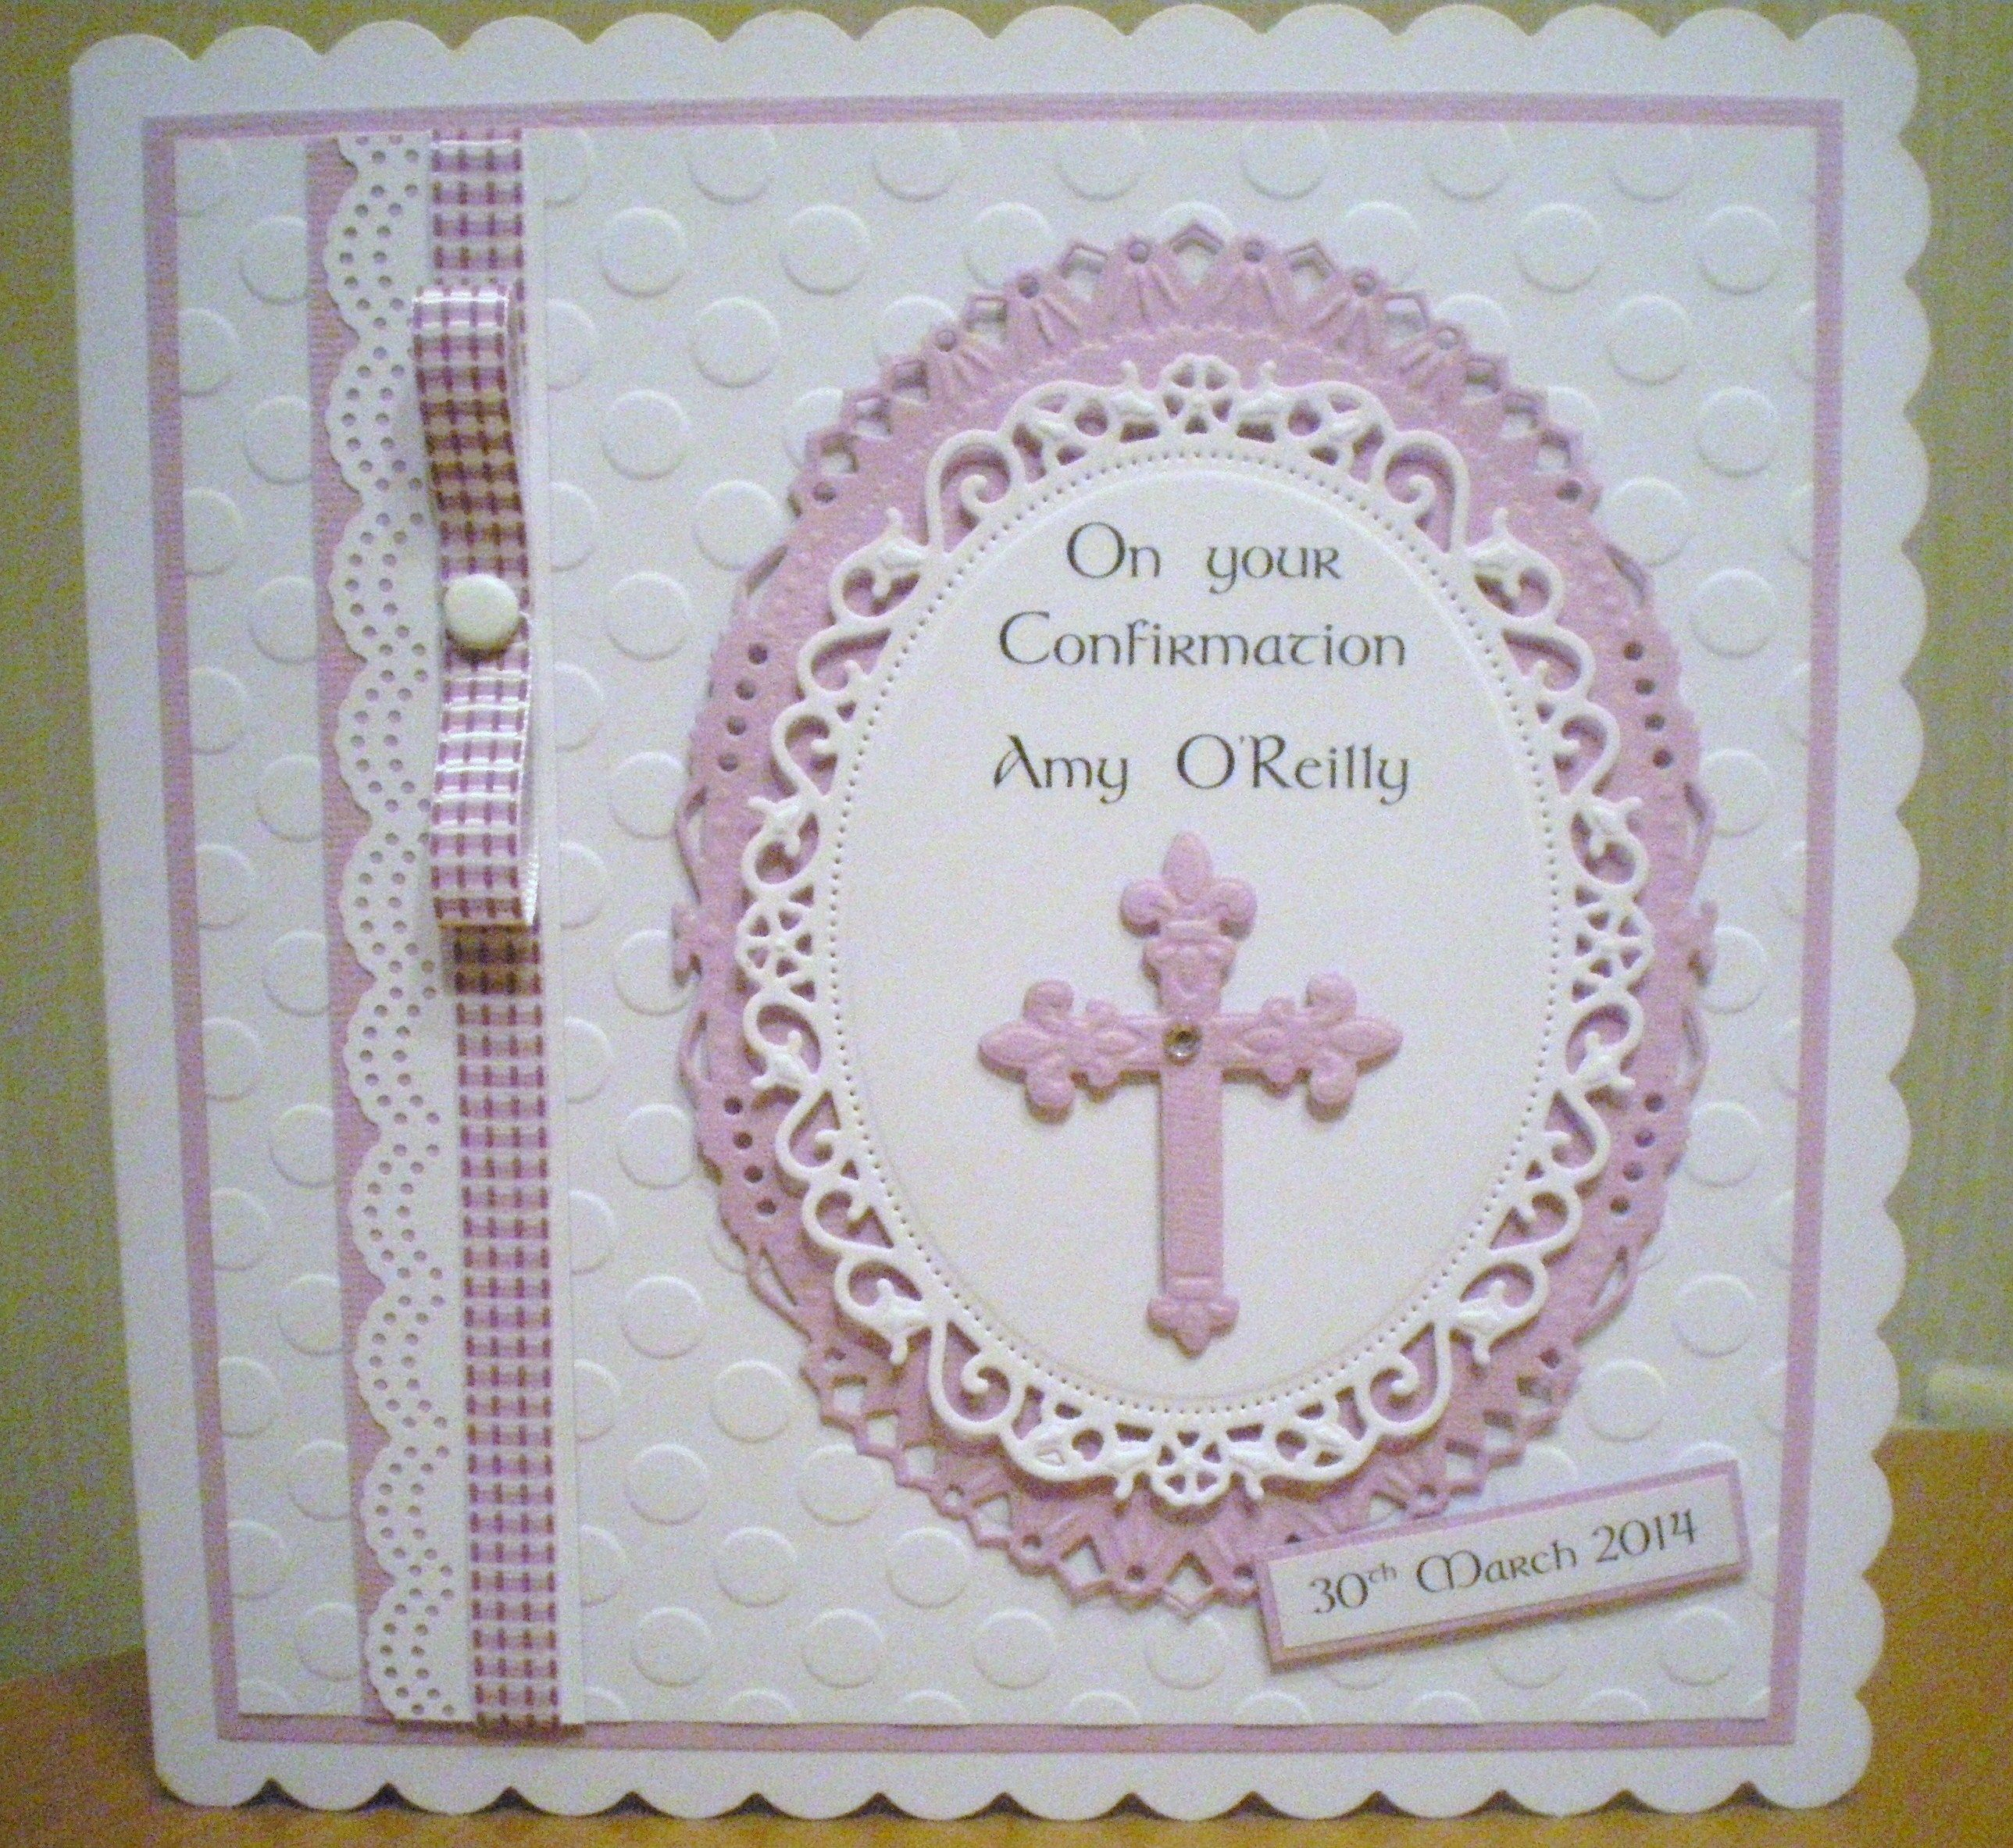 Confirmation card using Spellbinder Grand Oval s embossing